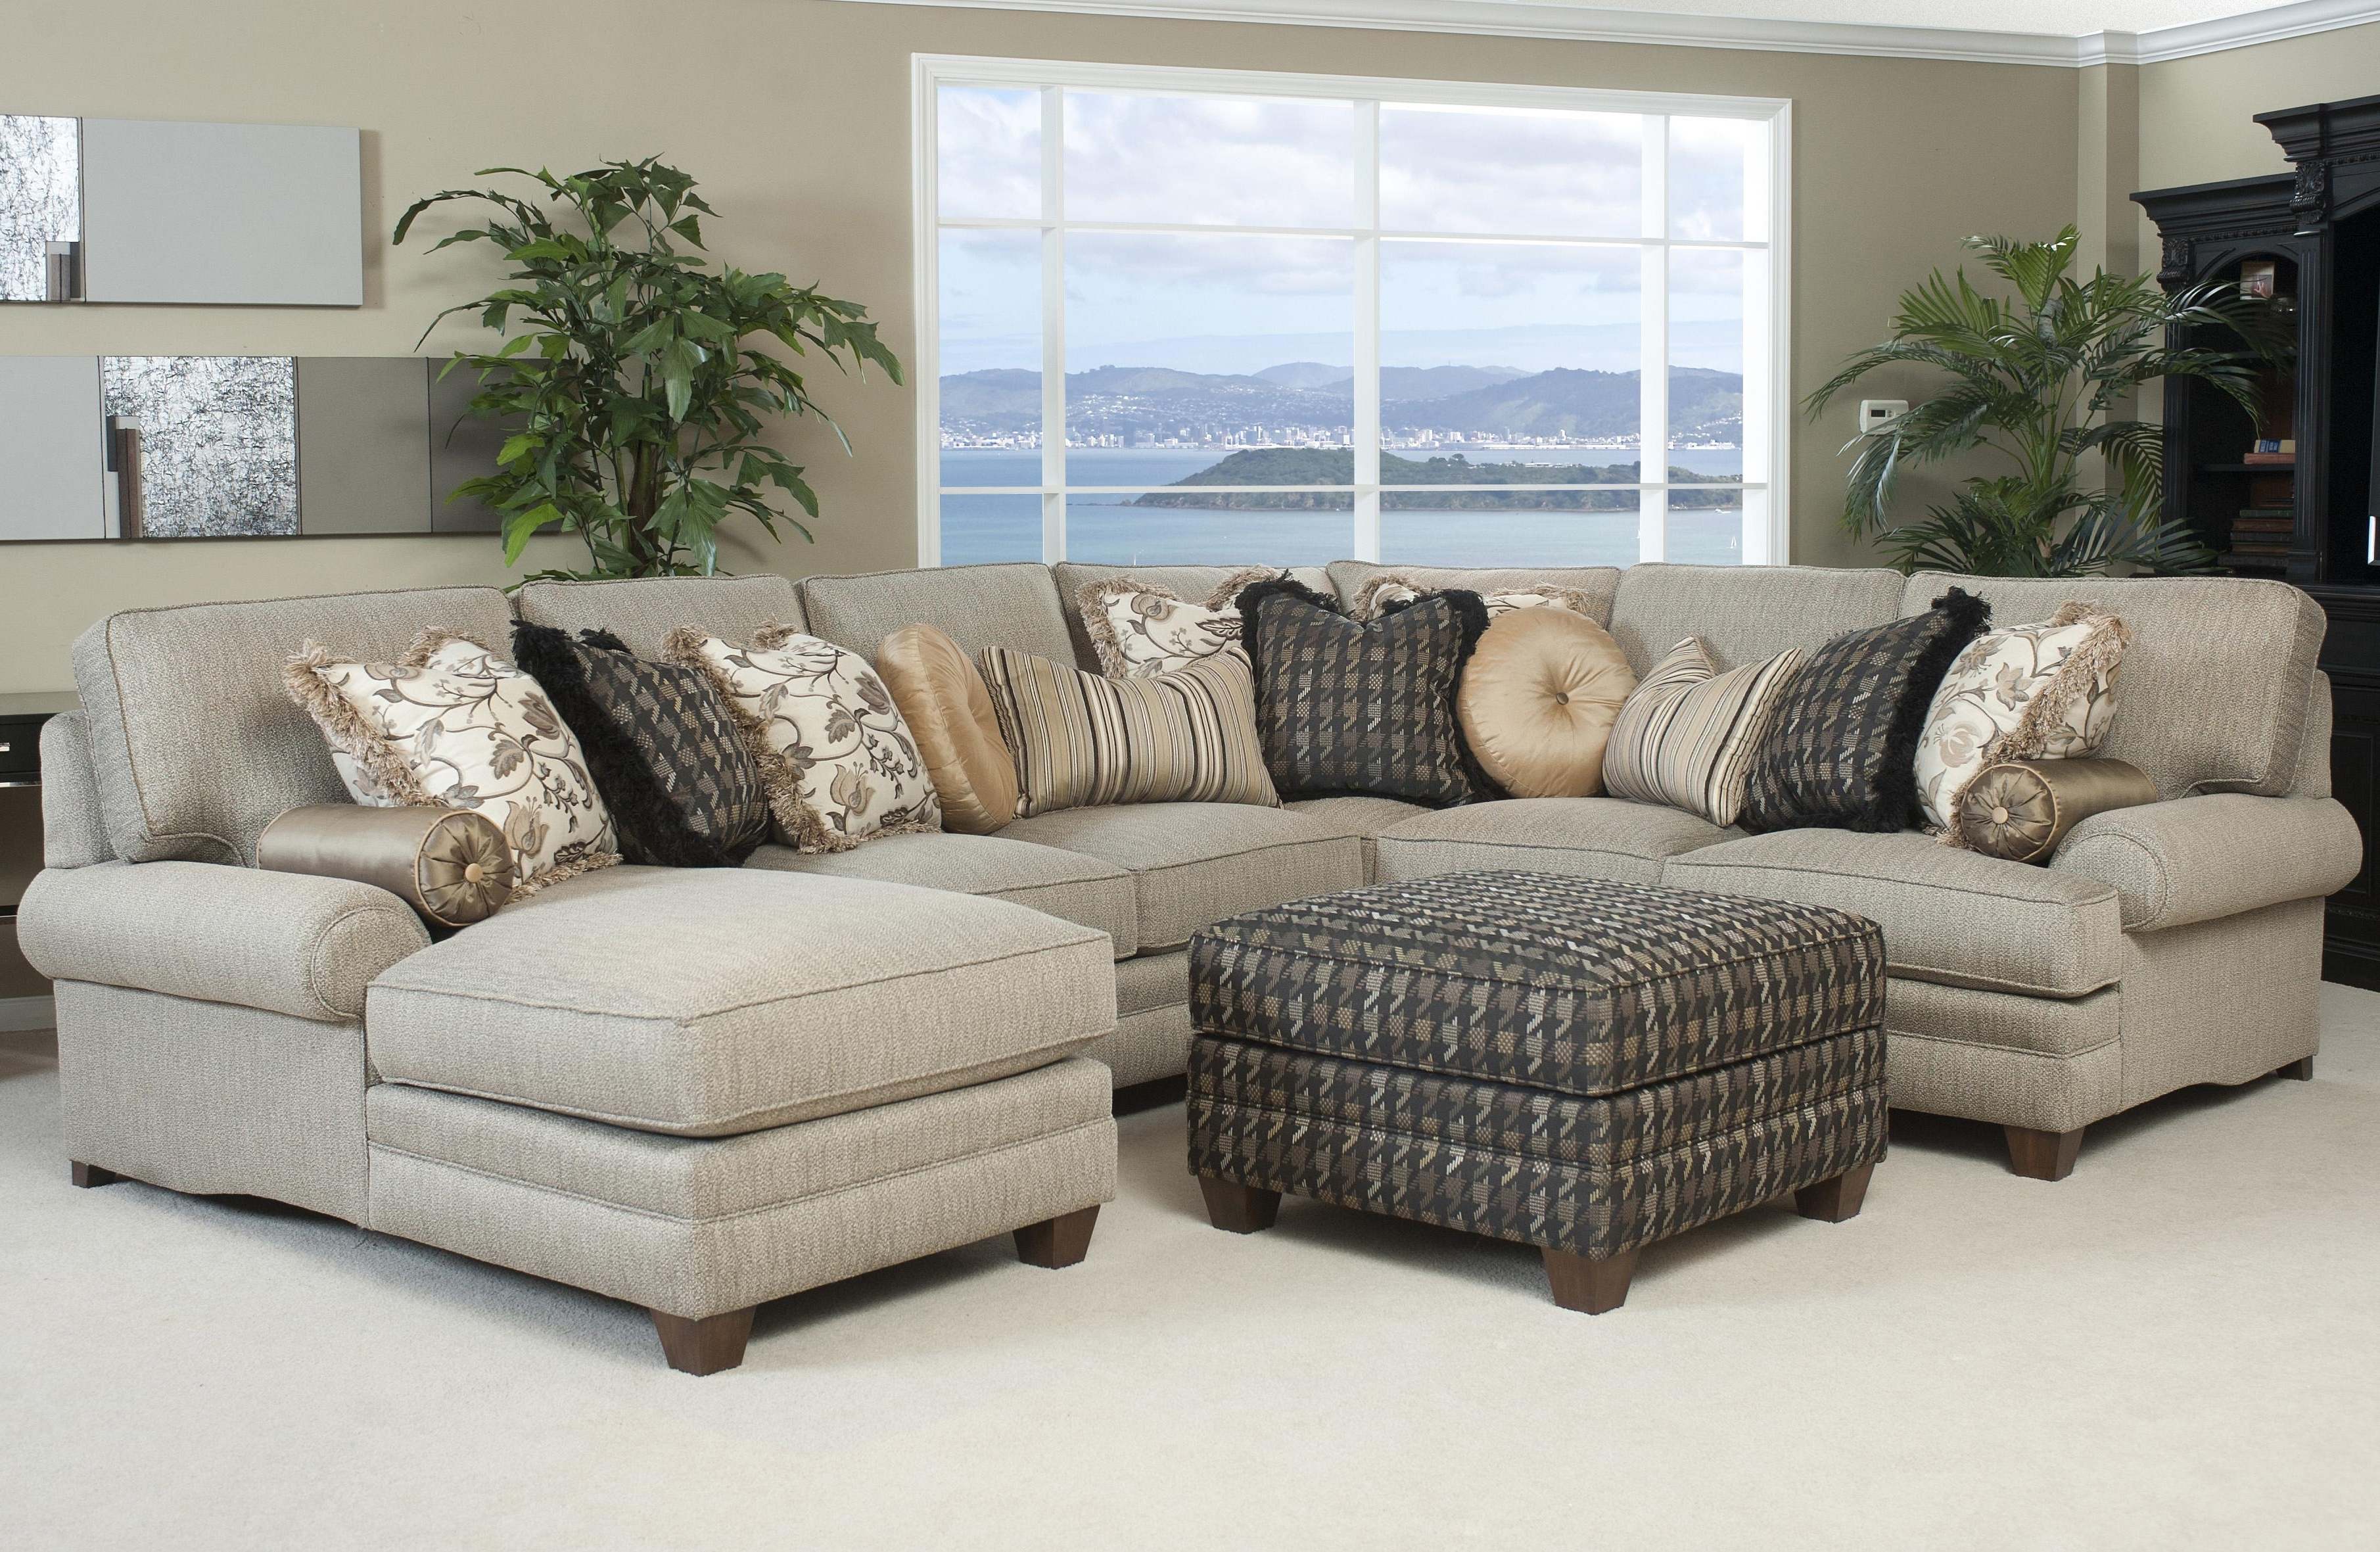 Latest Jcpenney Sectional Sofas Regarding Great Sofa Sectionals With Chaise 54 About Remodel Sectional Sofas (View 4 of 20)